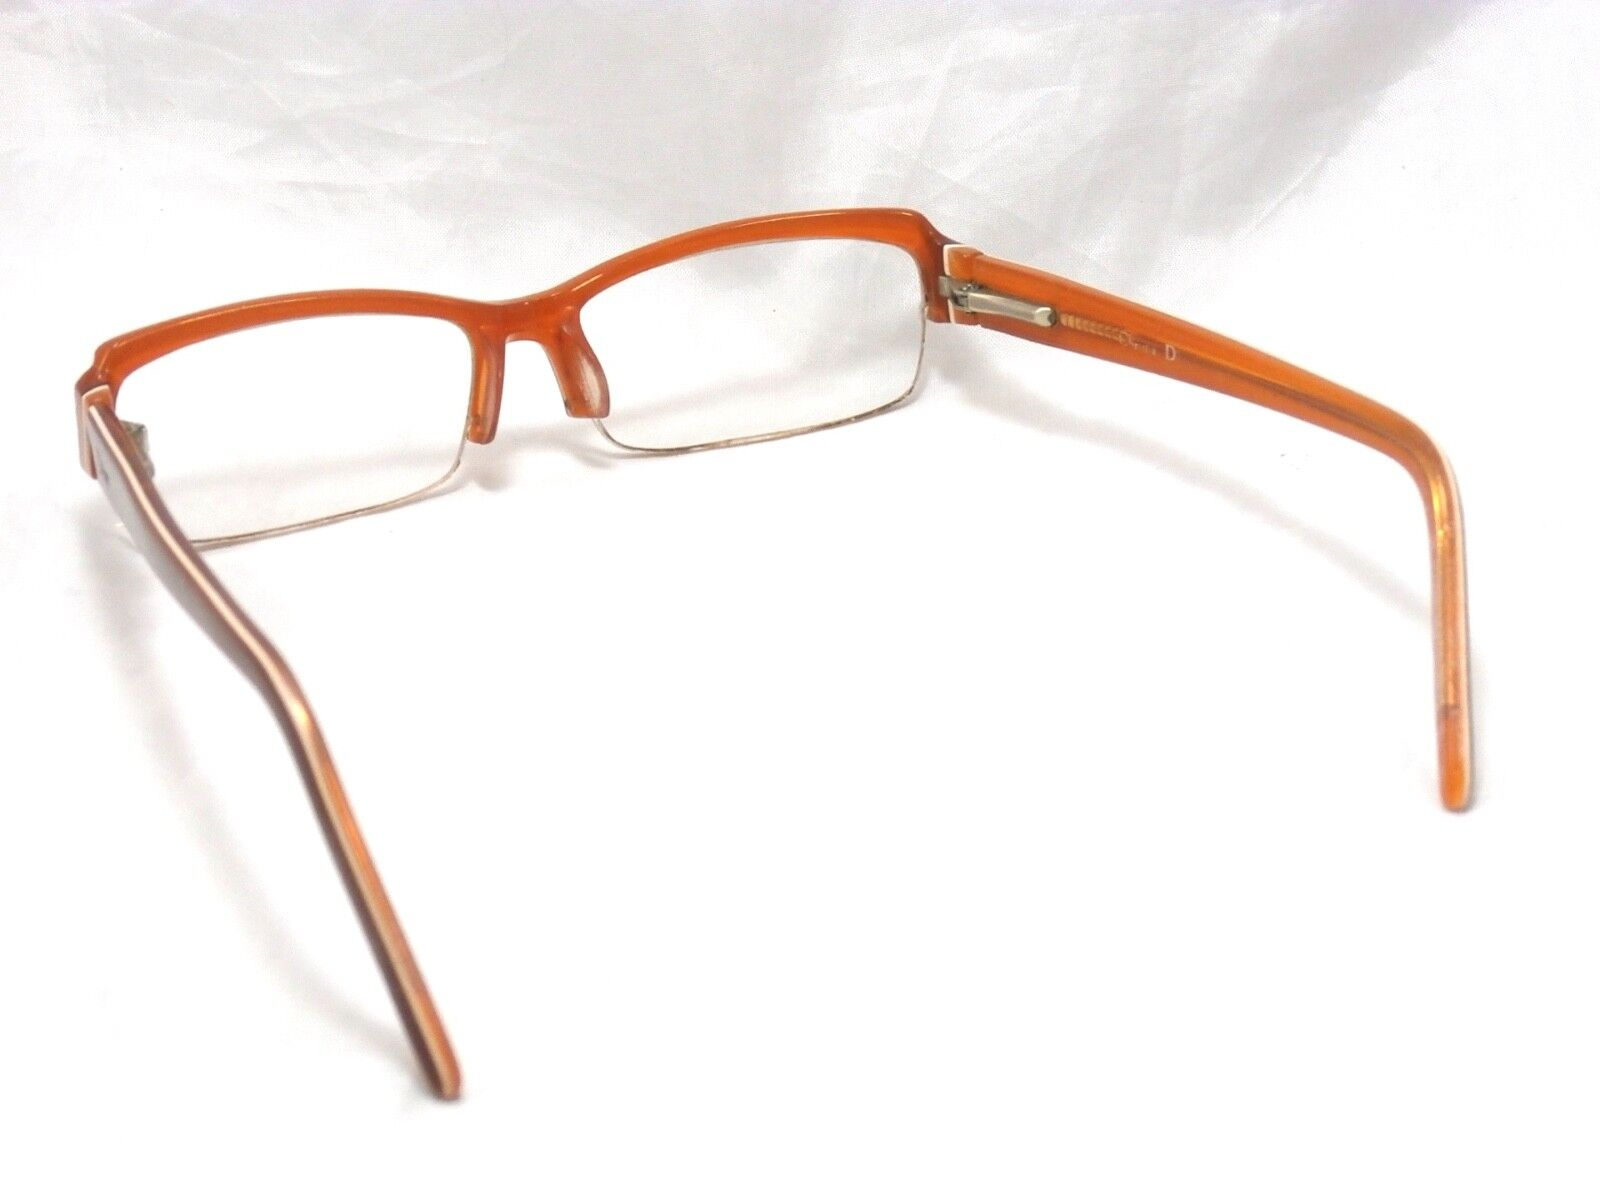 52a43f63d8d Ободок для очков Christian Dior Women s Semi Rimless Eyeglasses Frame